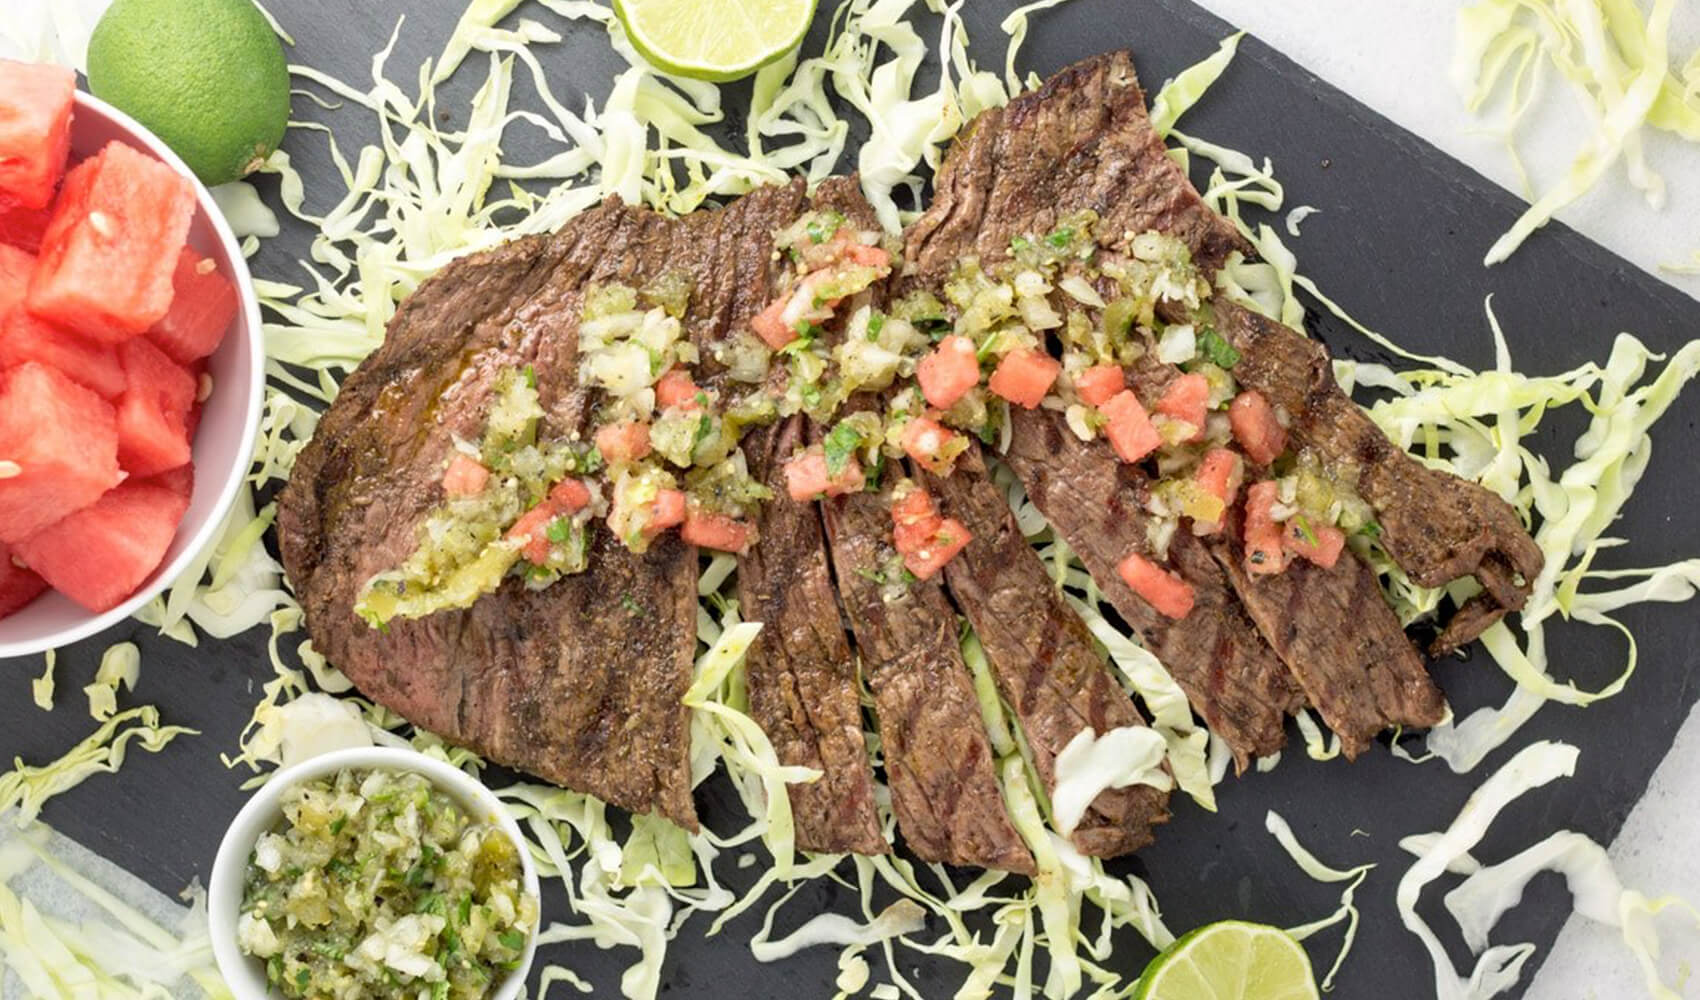 Grilled Carne Asada with Tomatillo Watermelon Salsa